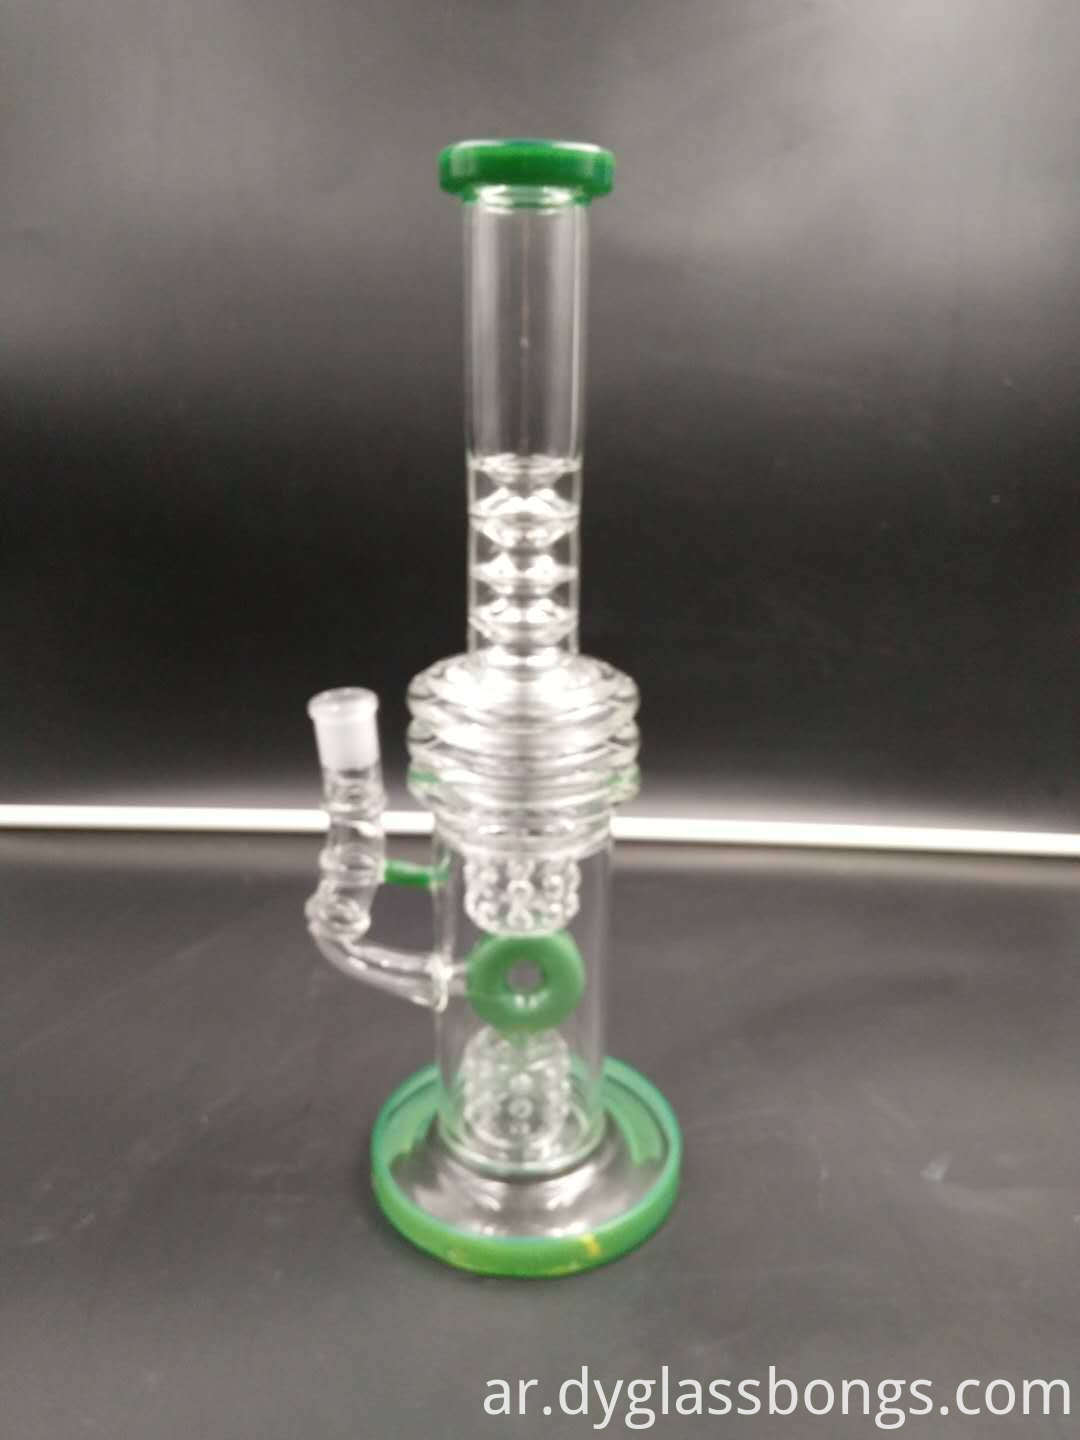 Classic double cage design of glass water pipe